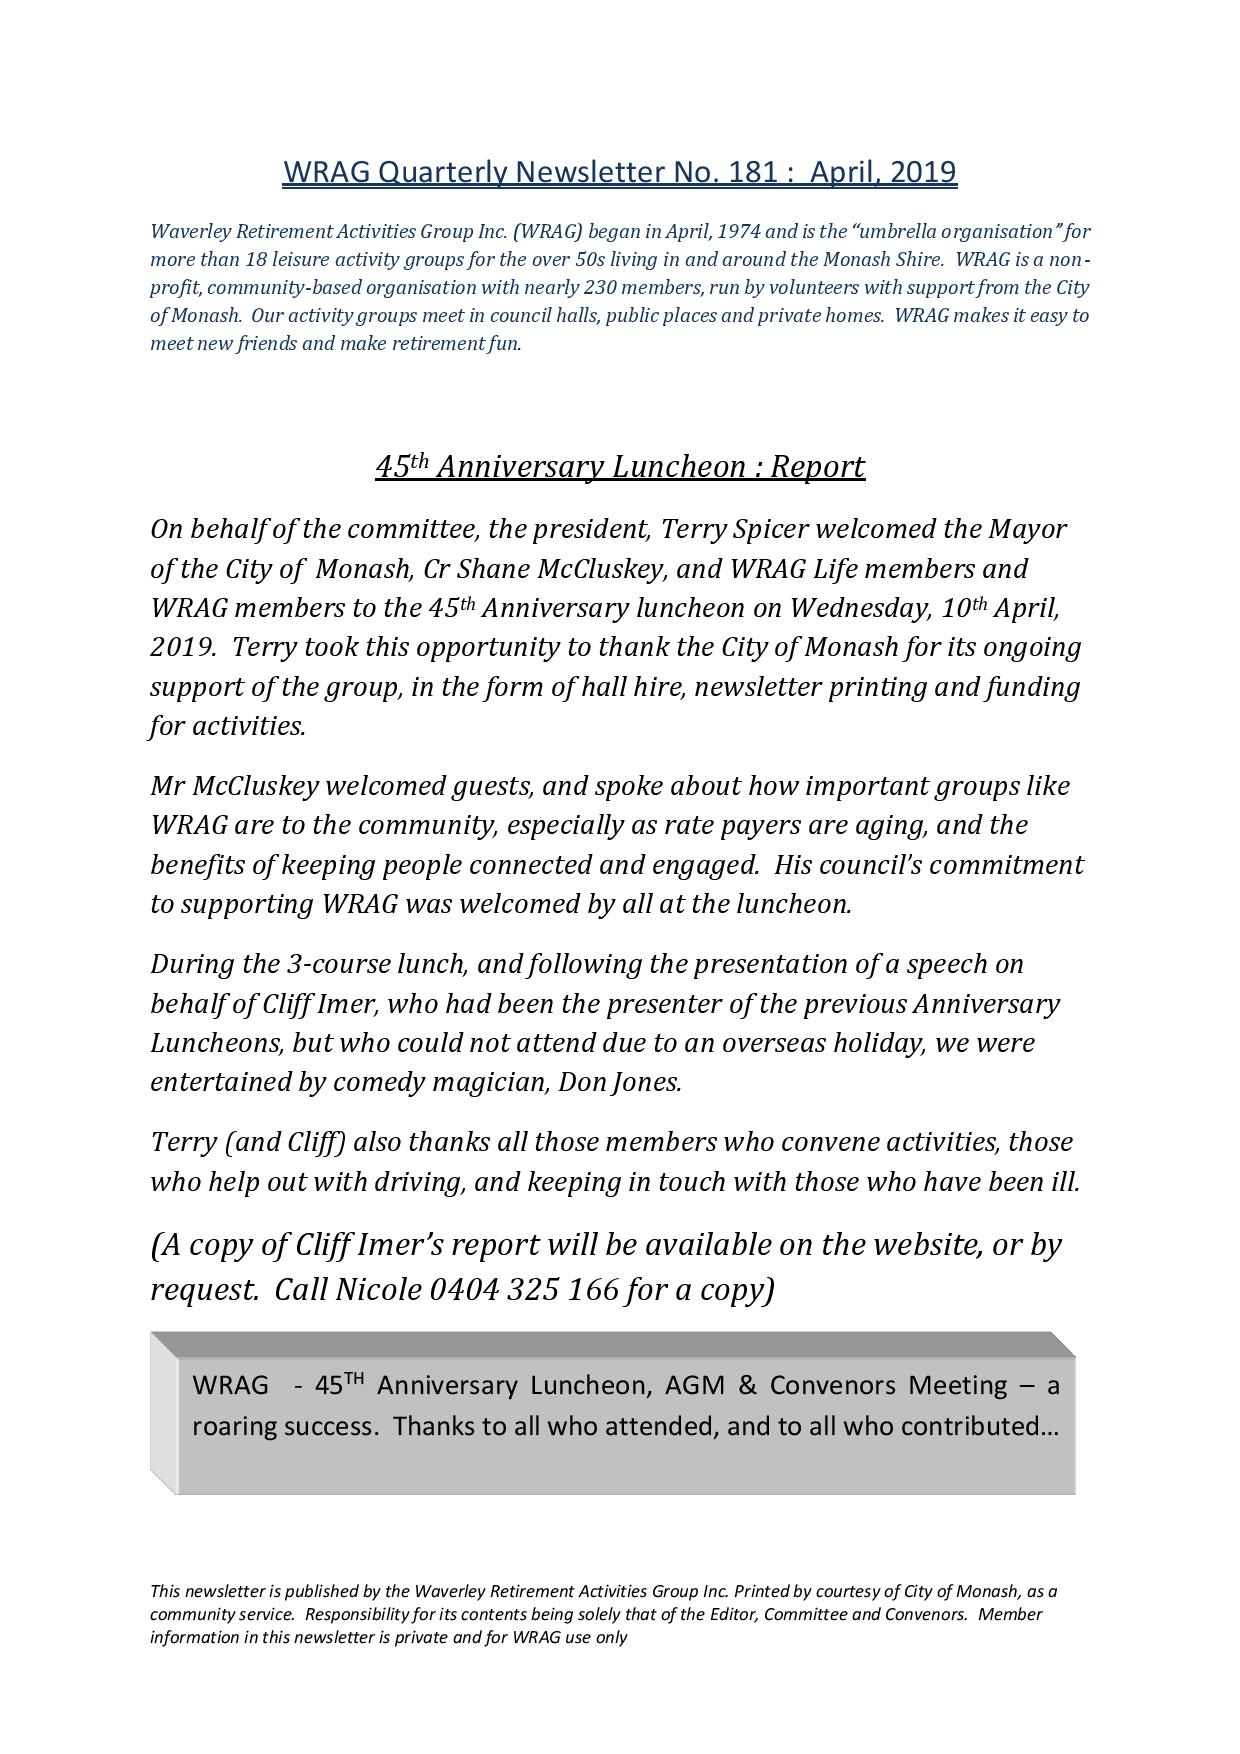 WRAG Newsletter No.181 Front Page, April 2019